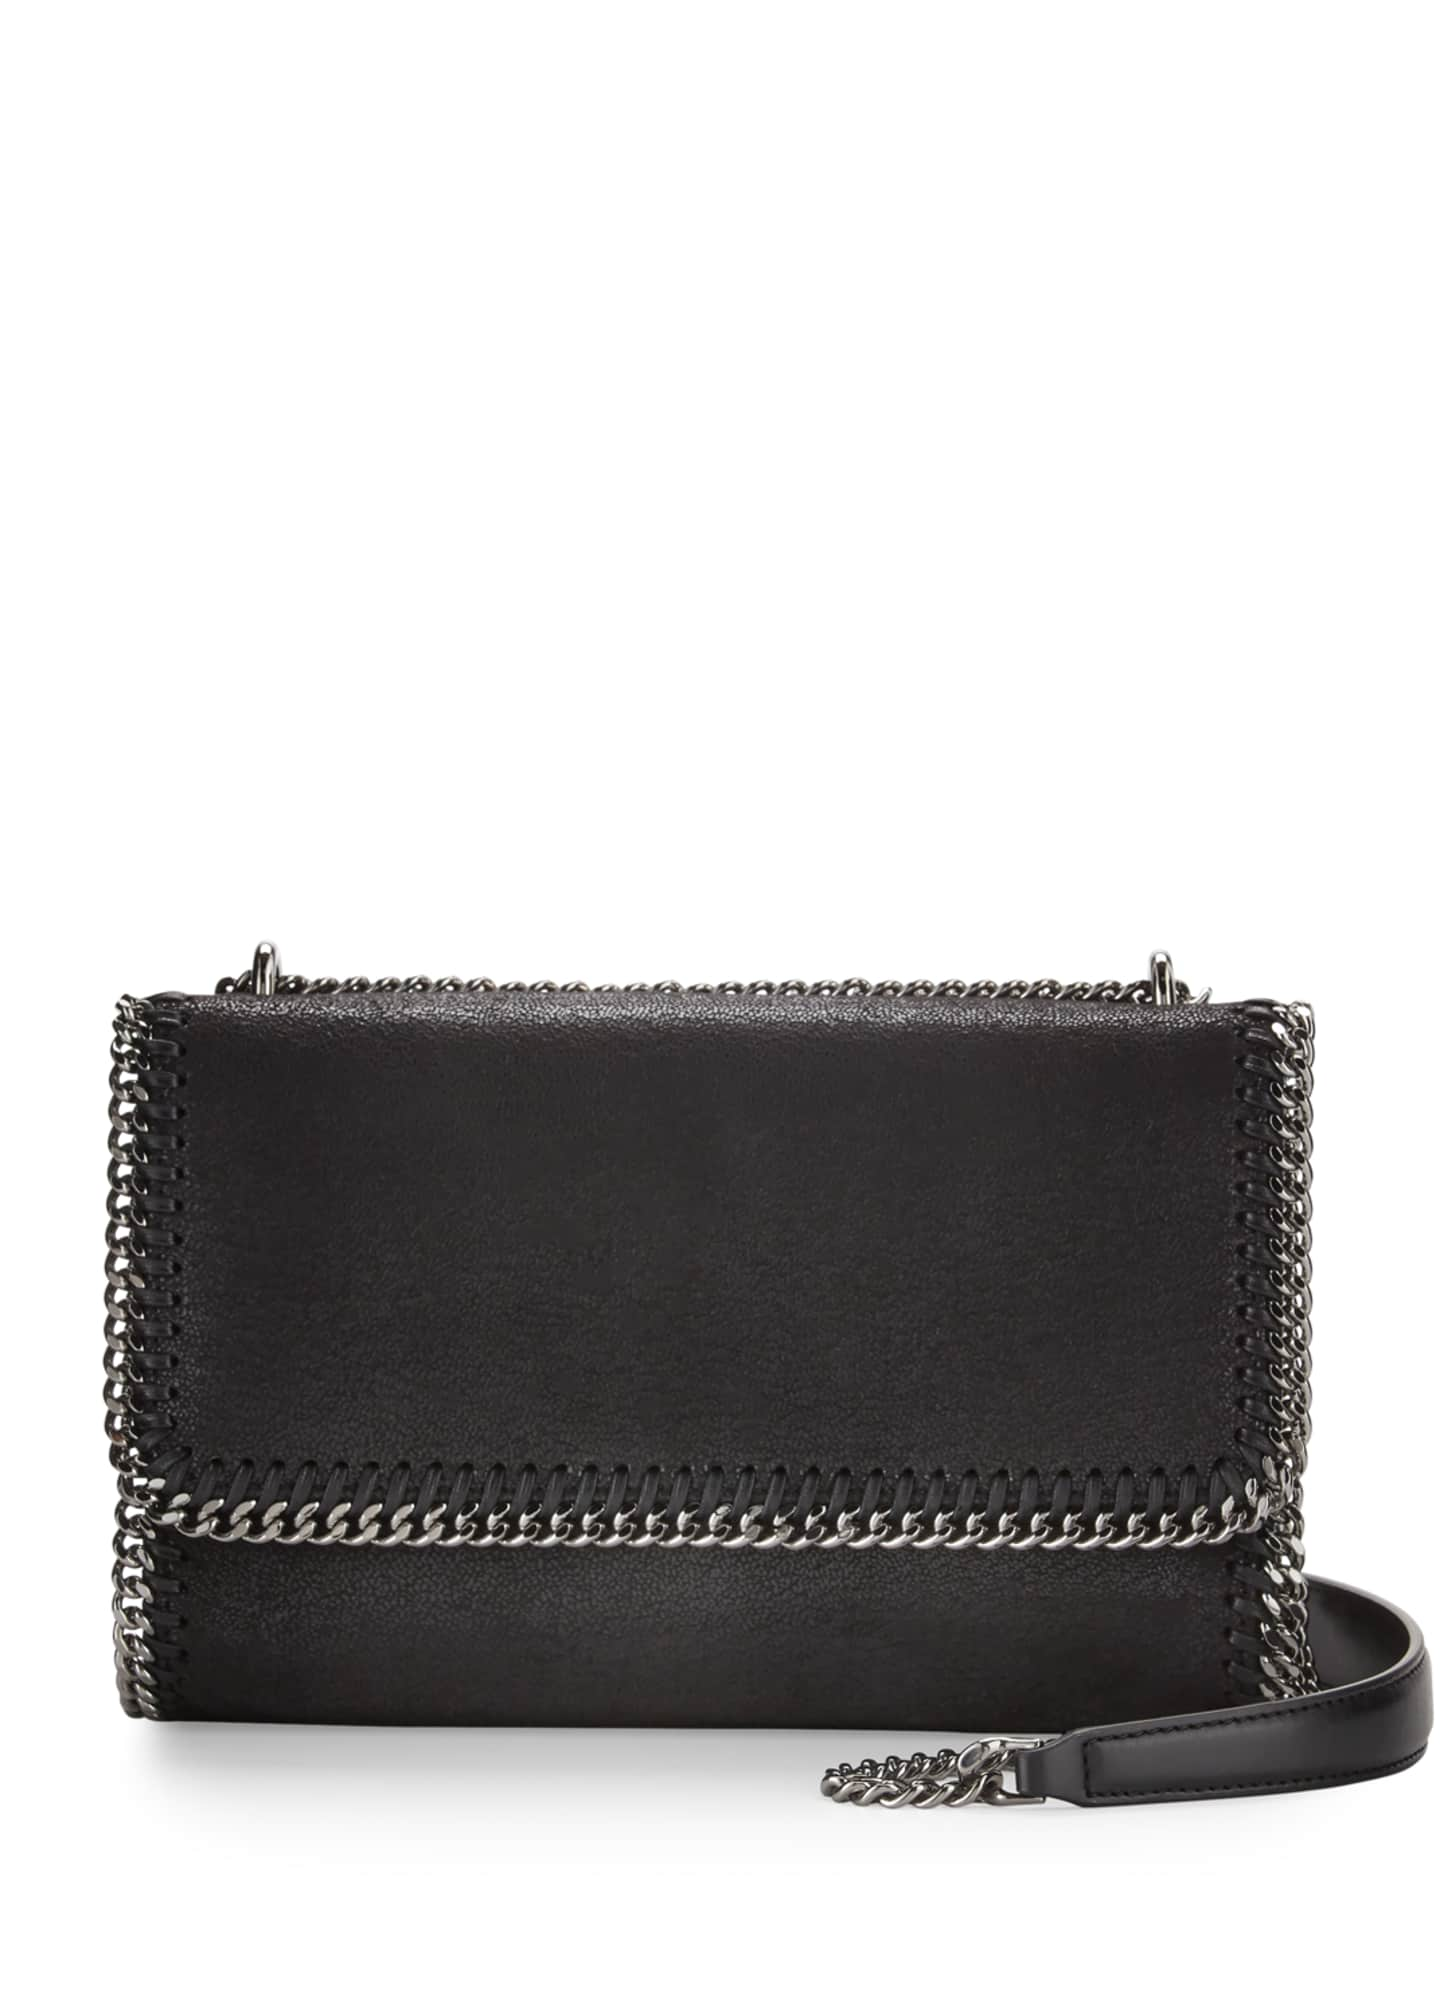 Stella McCartney Falabella Convertible Shoulder Bag